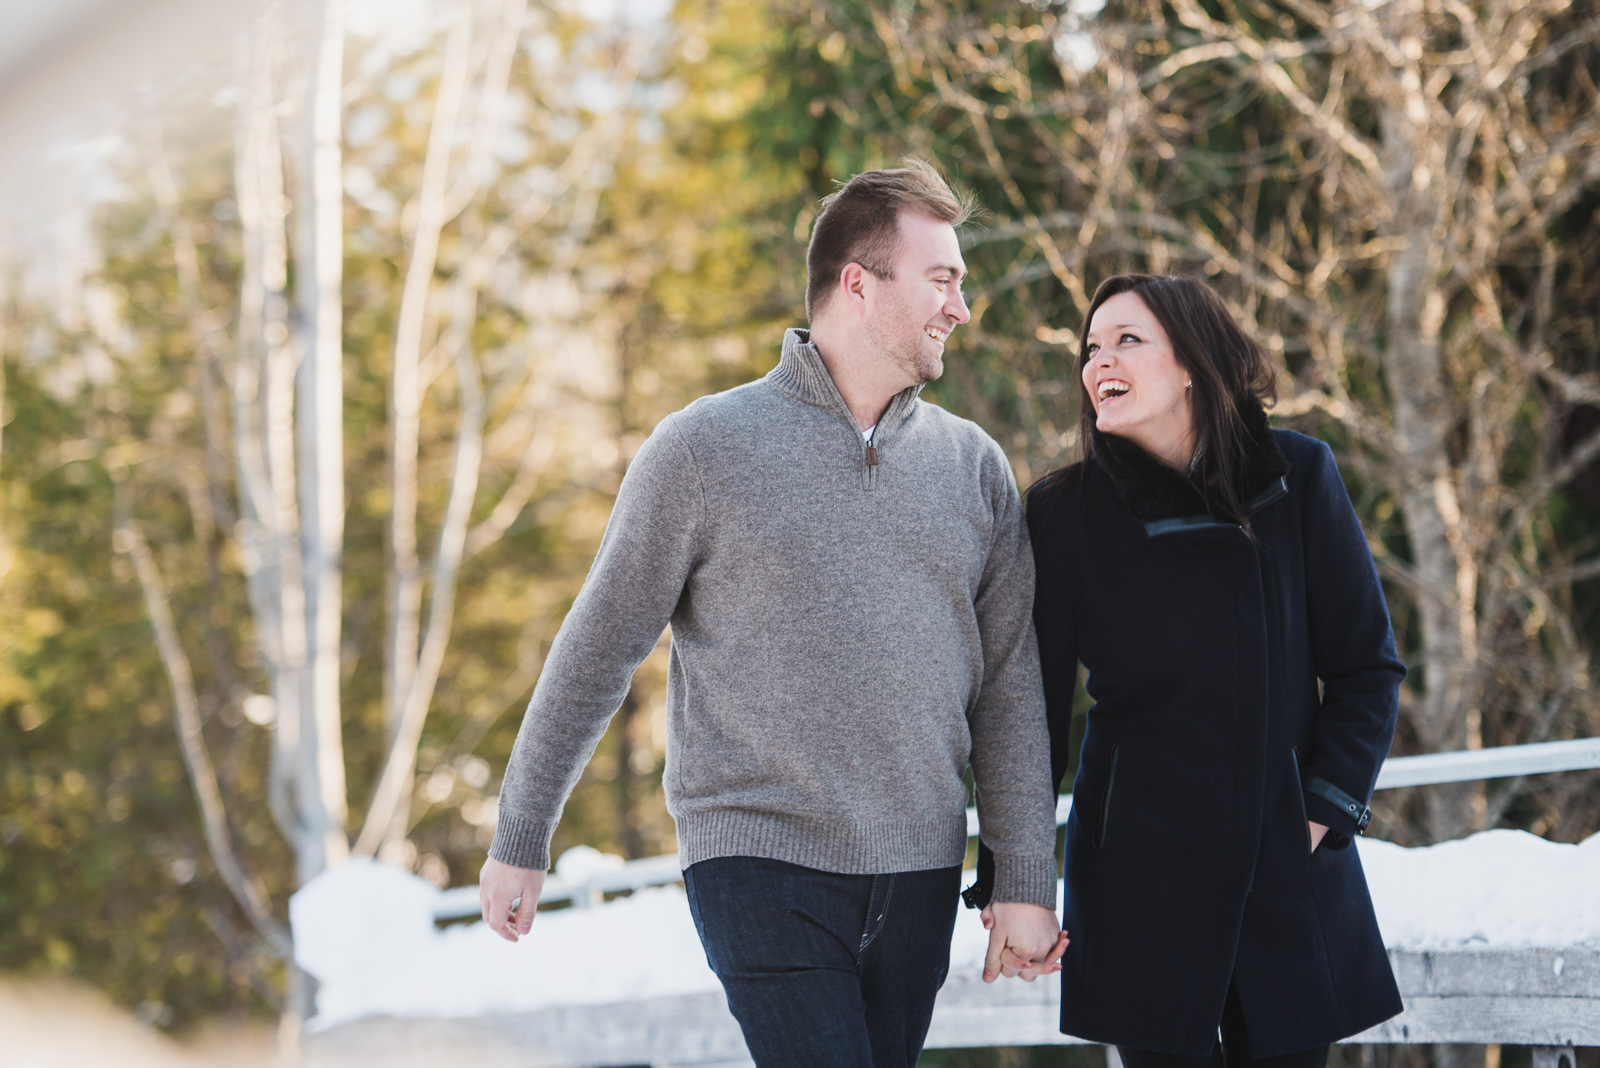 winter-whistler-engagement-whistler-wedding-photographer-green-lake-engagement-2.jpg